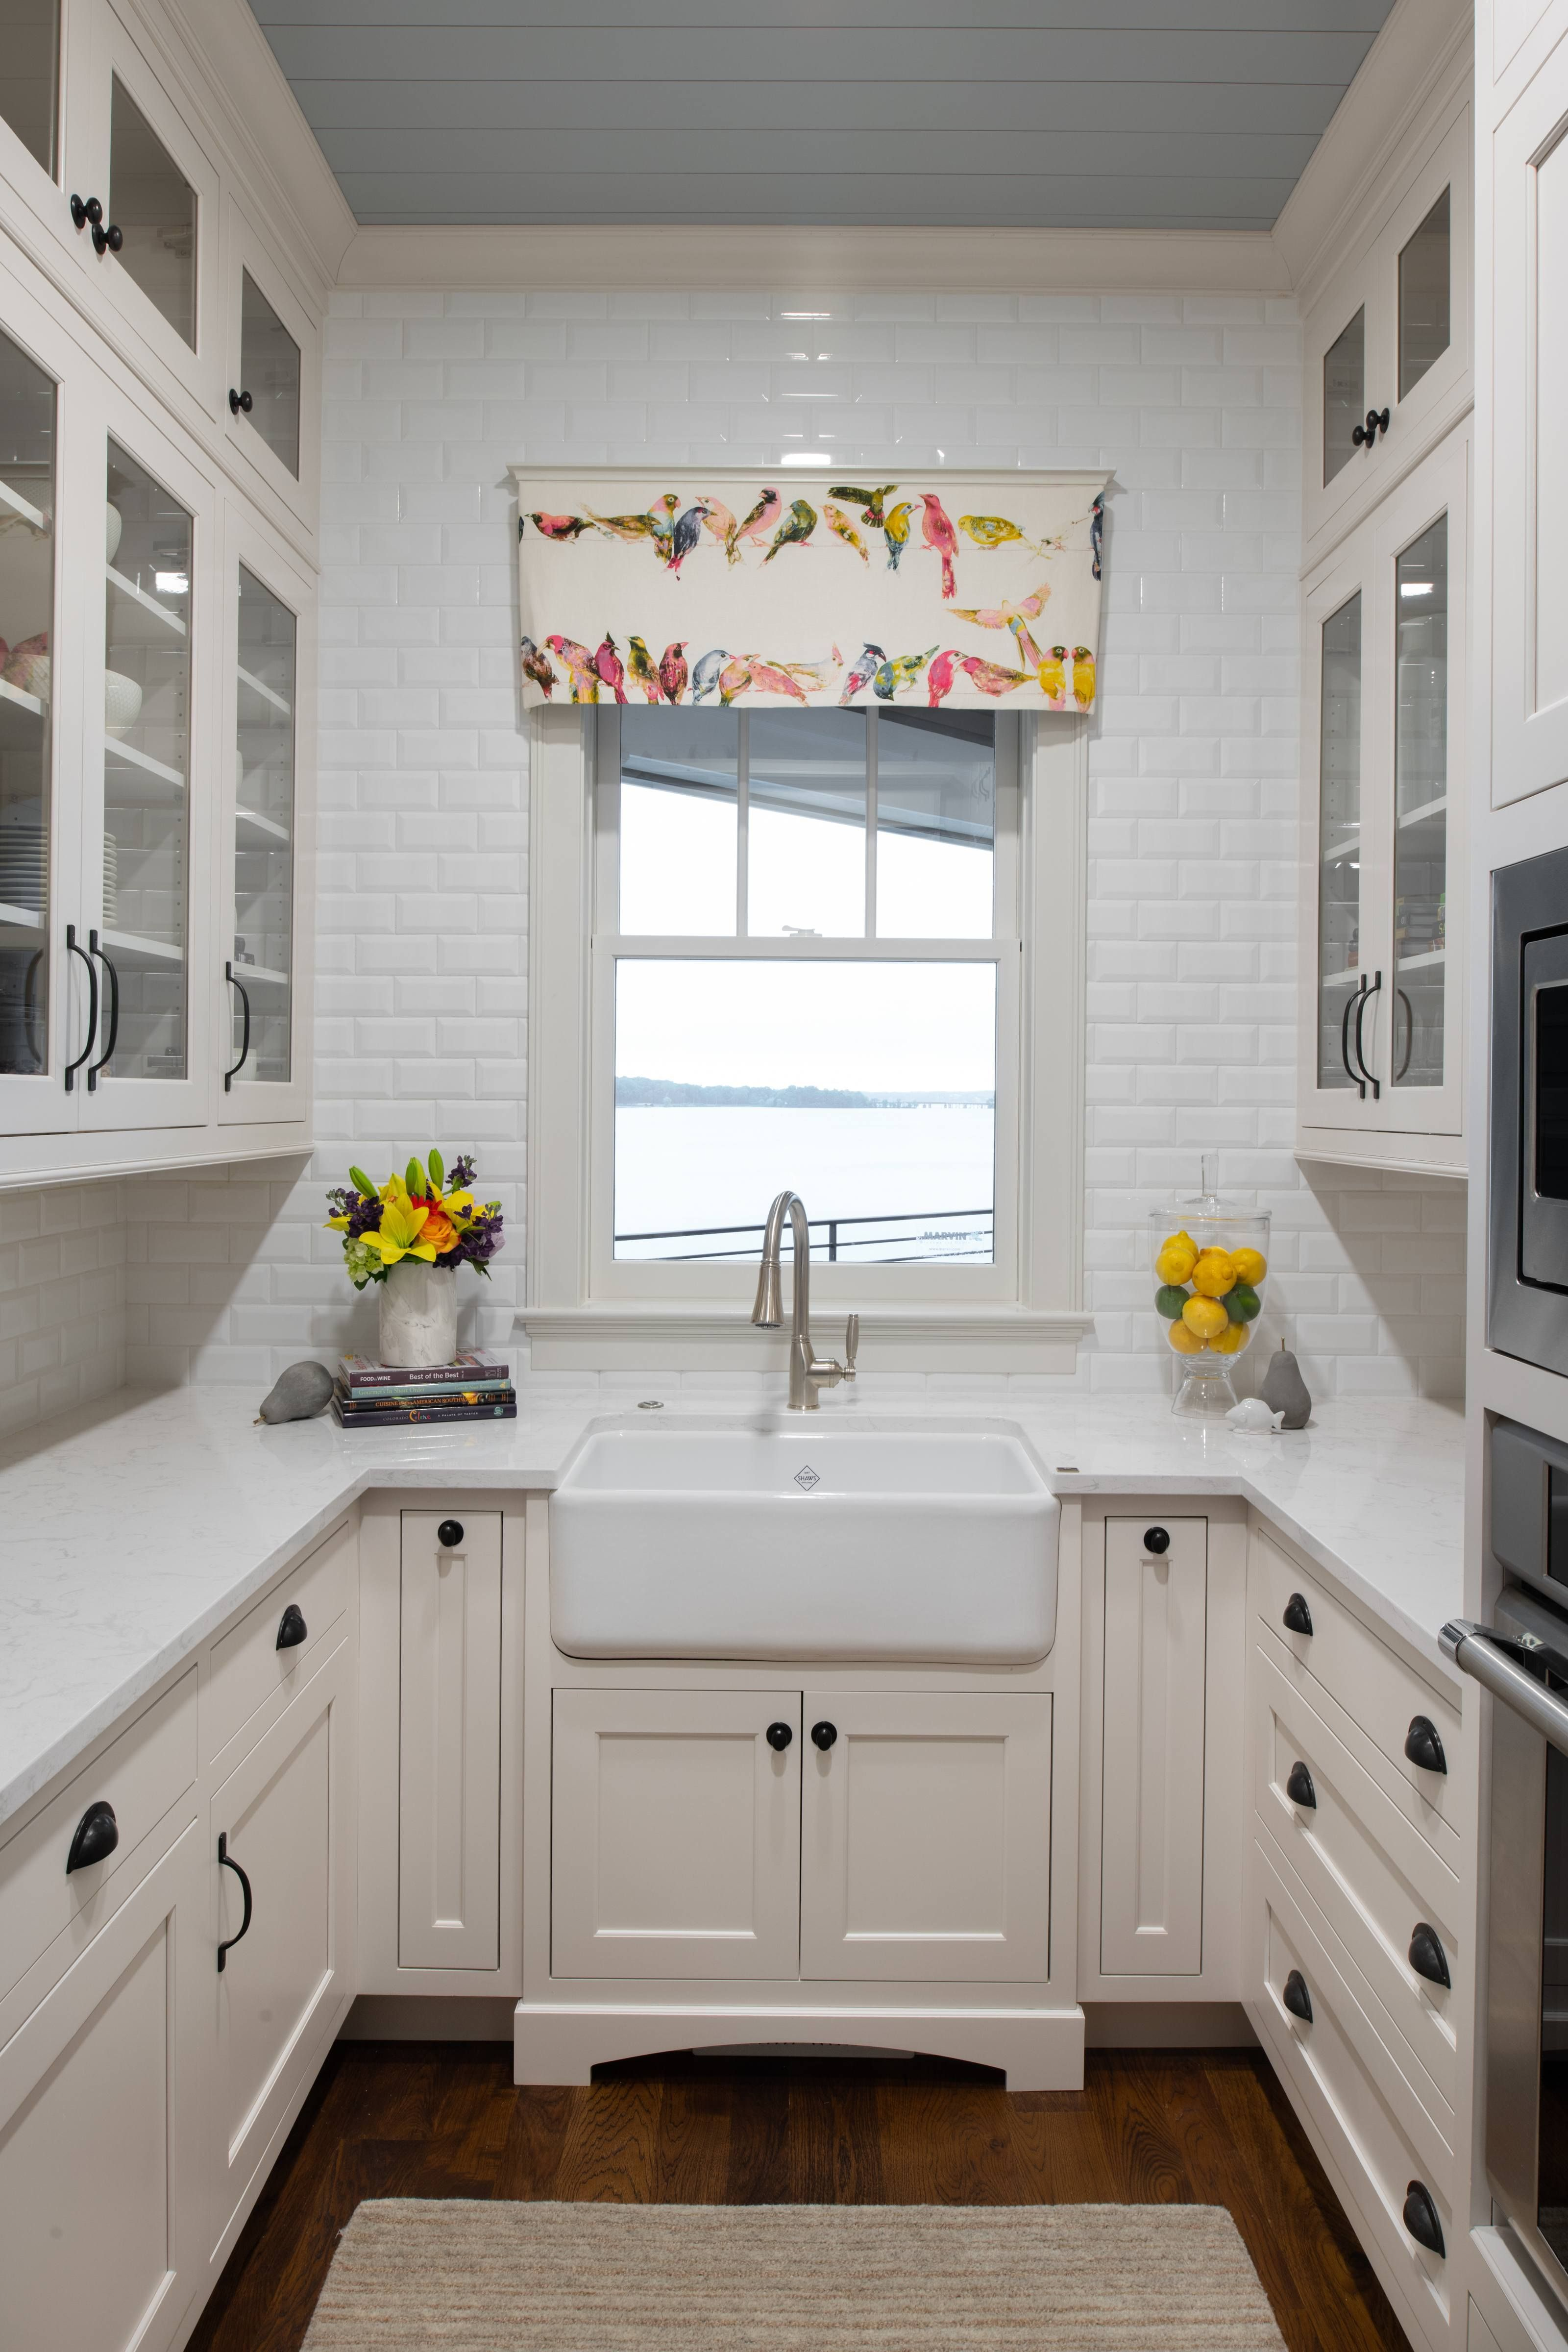 Inspiration Cuisine En U cambria countertops – beauty and durability throughout the